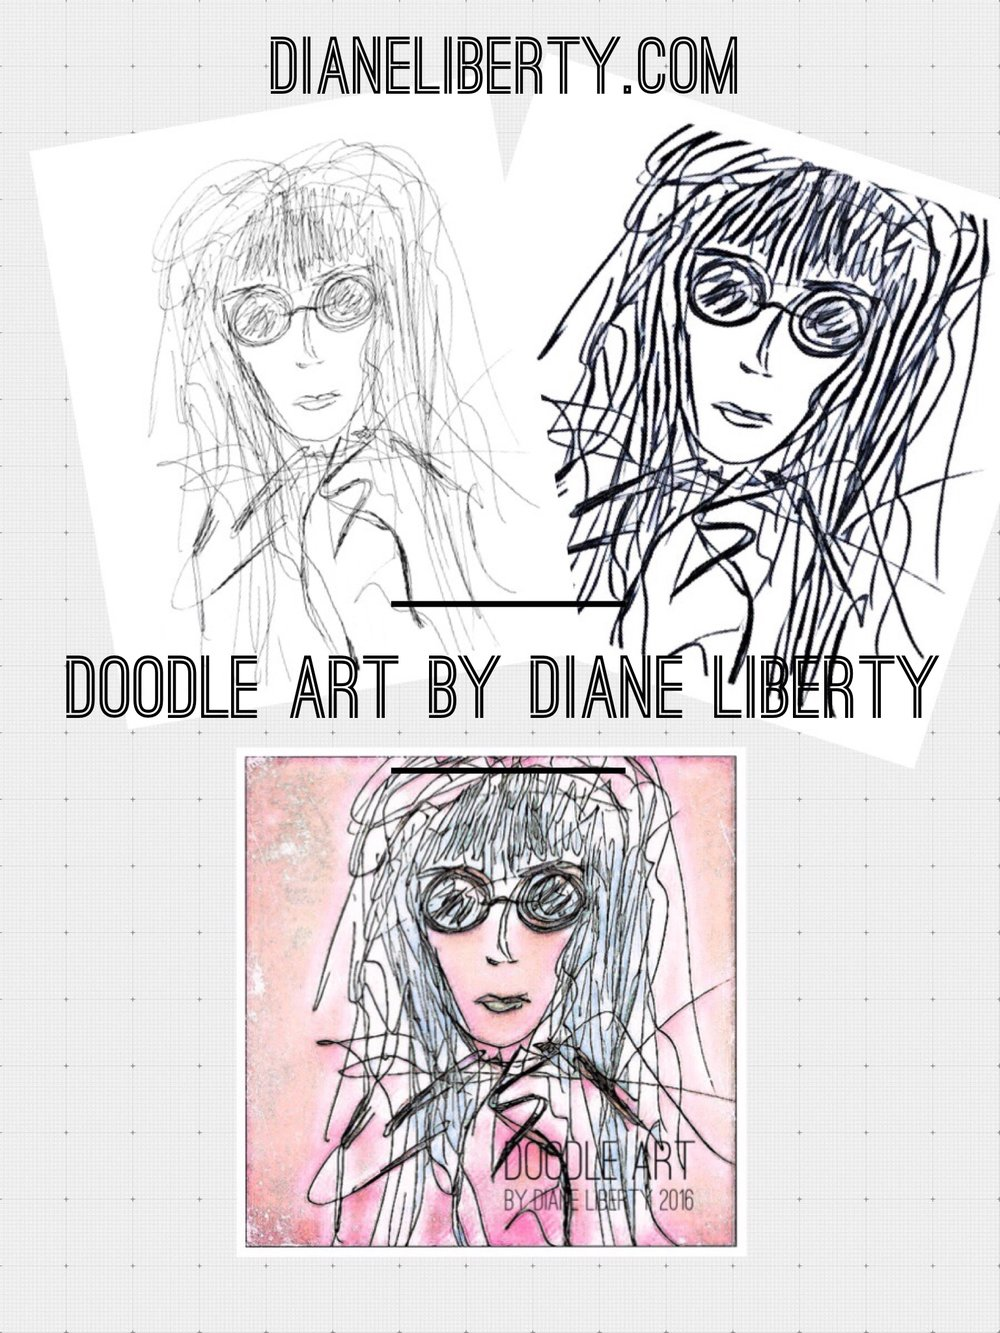 Copyright ©2016 Diane Liberty. All rights reserved.